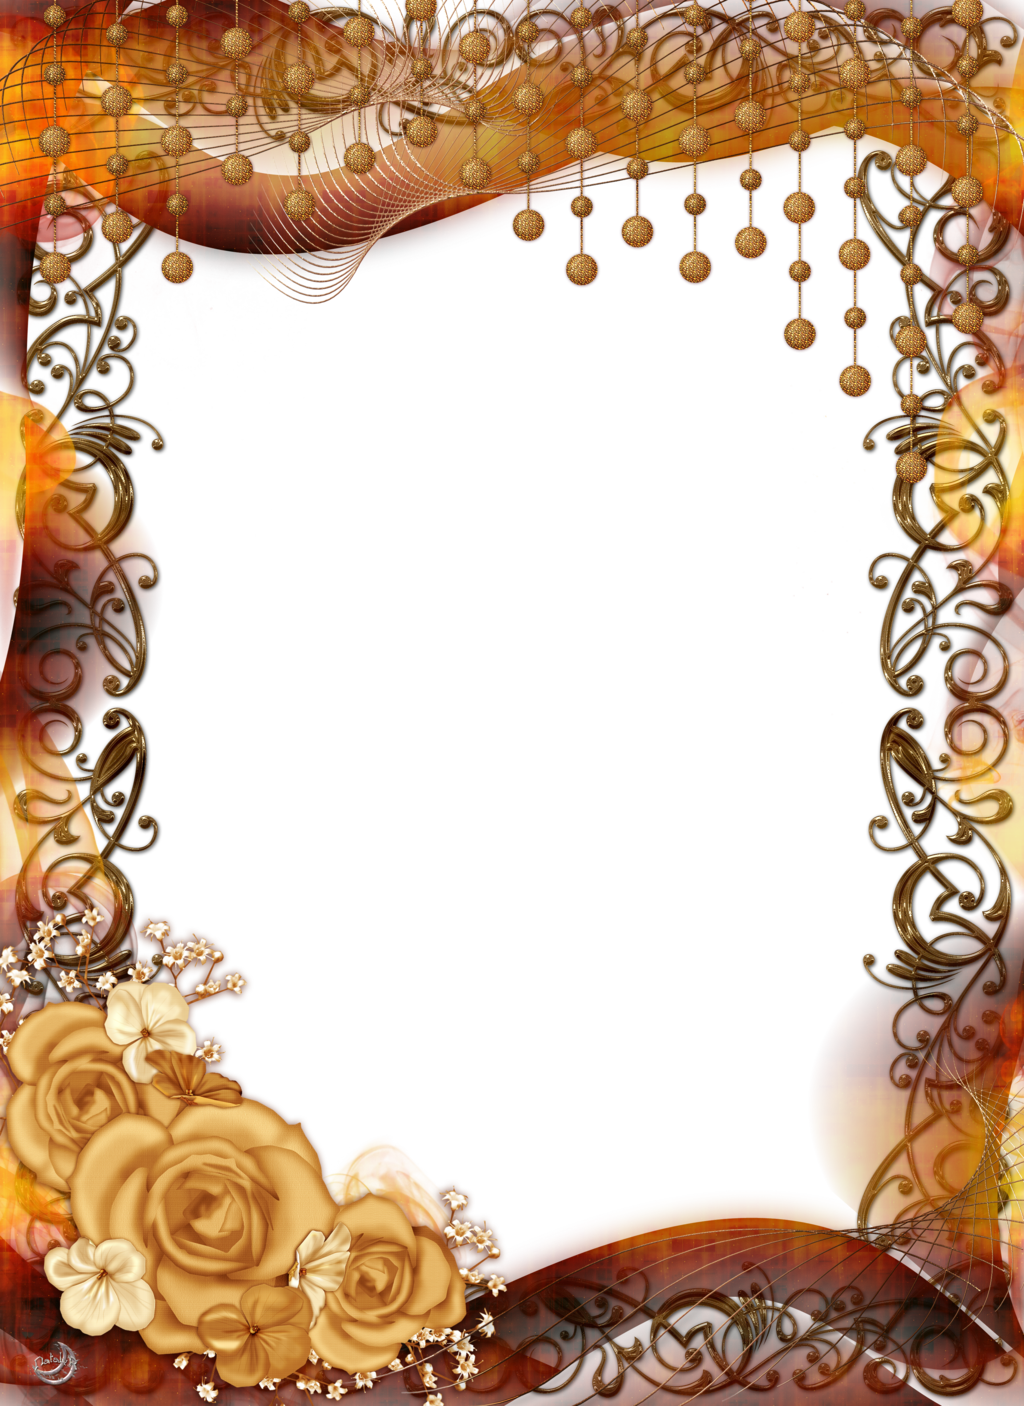 Frames clipart peach. Frame with roses and